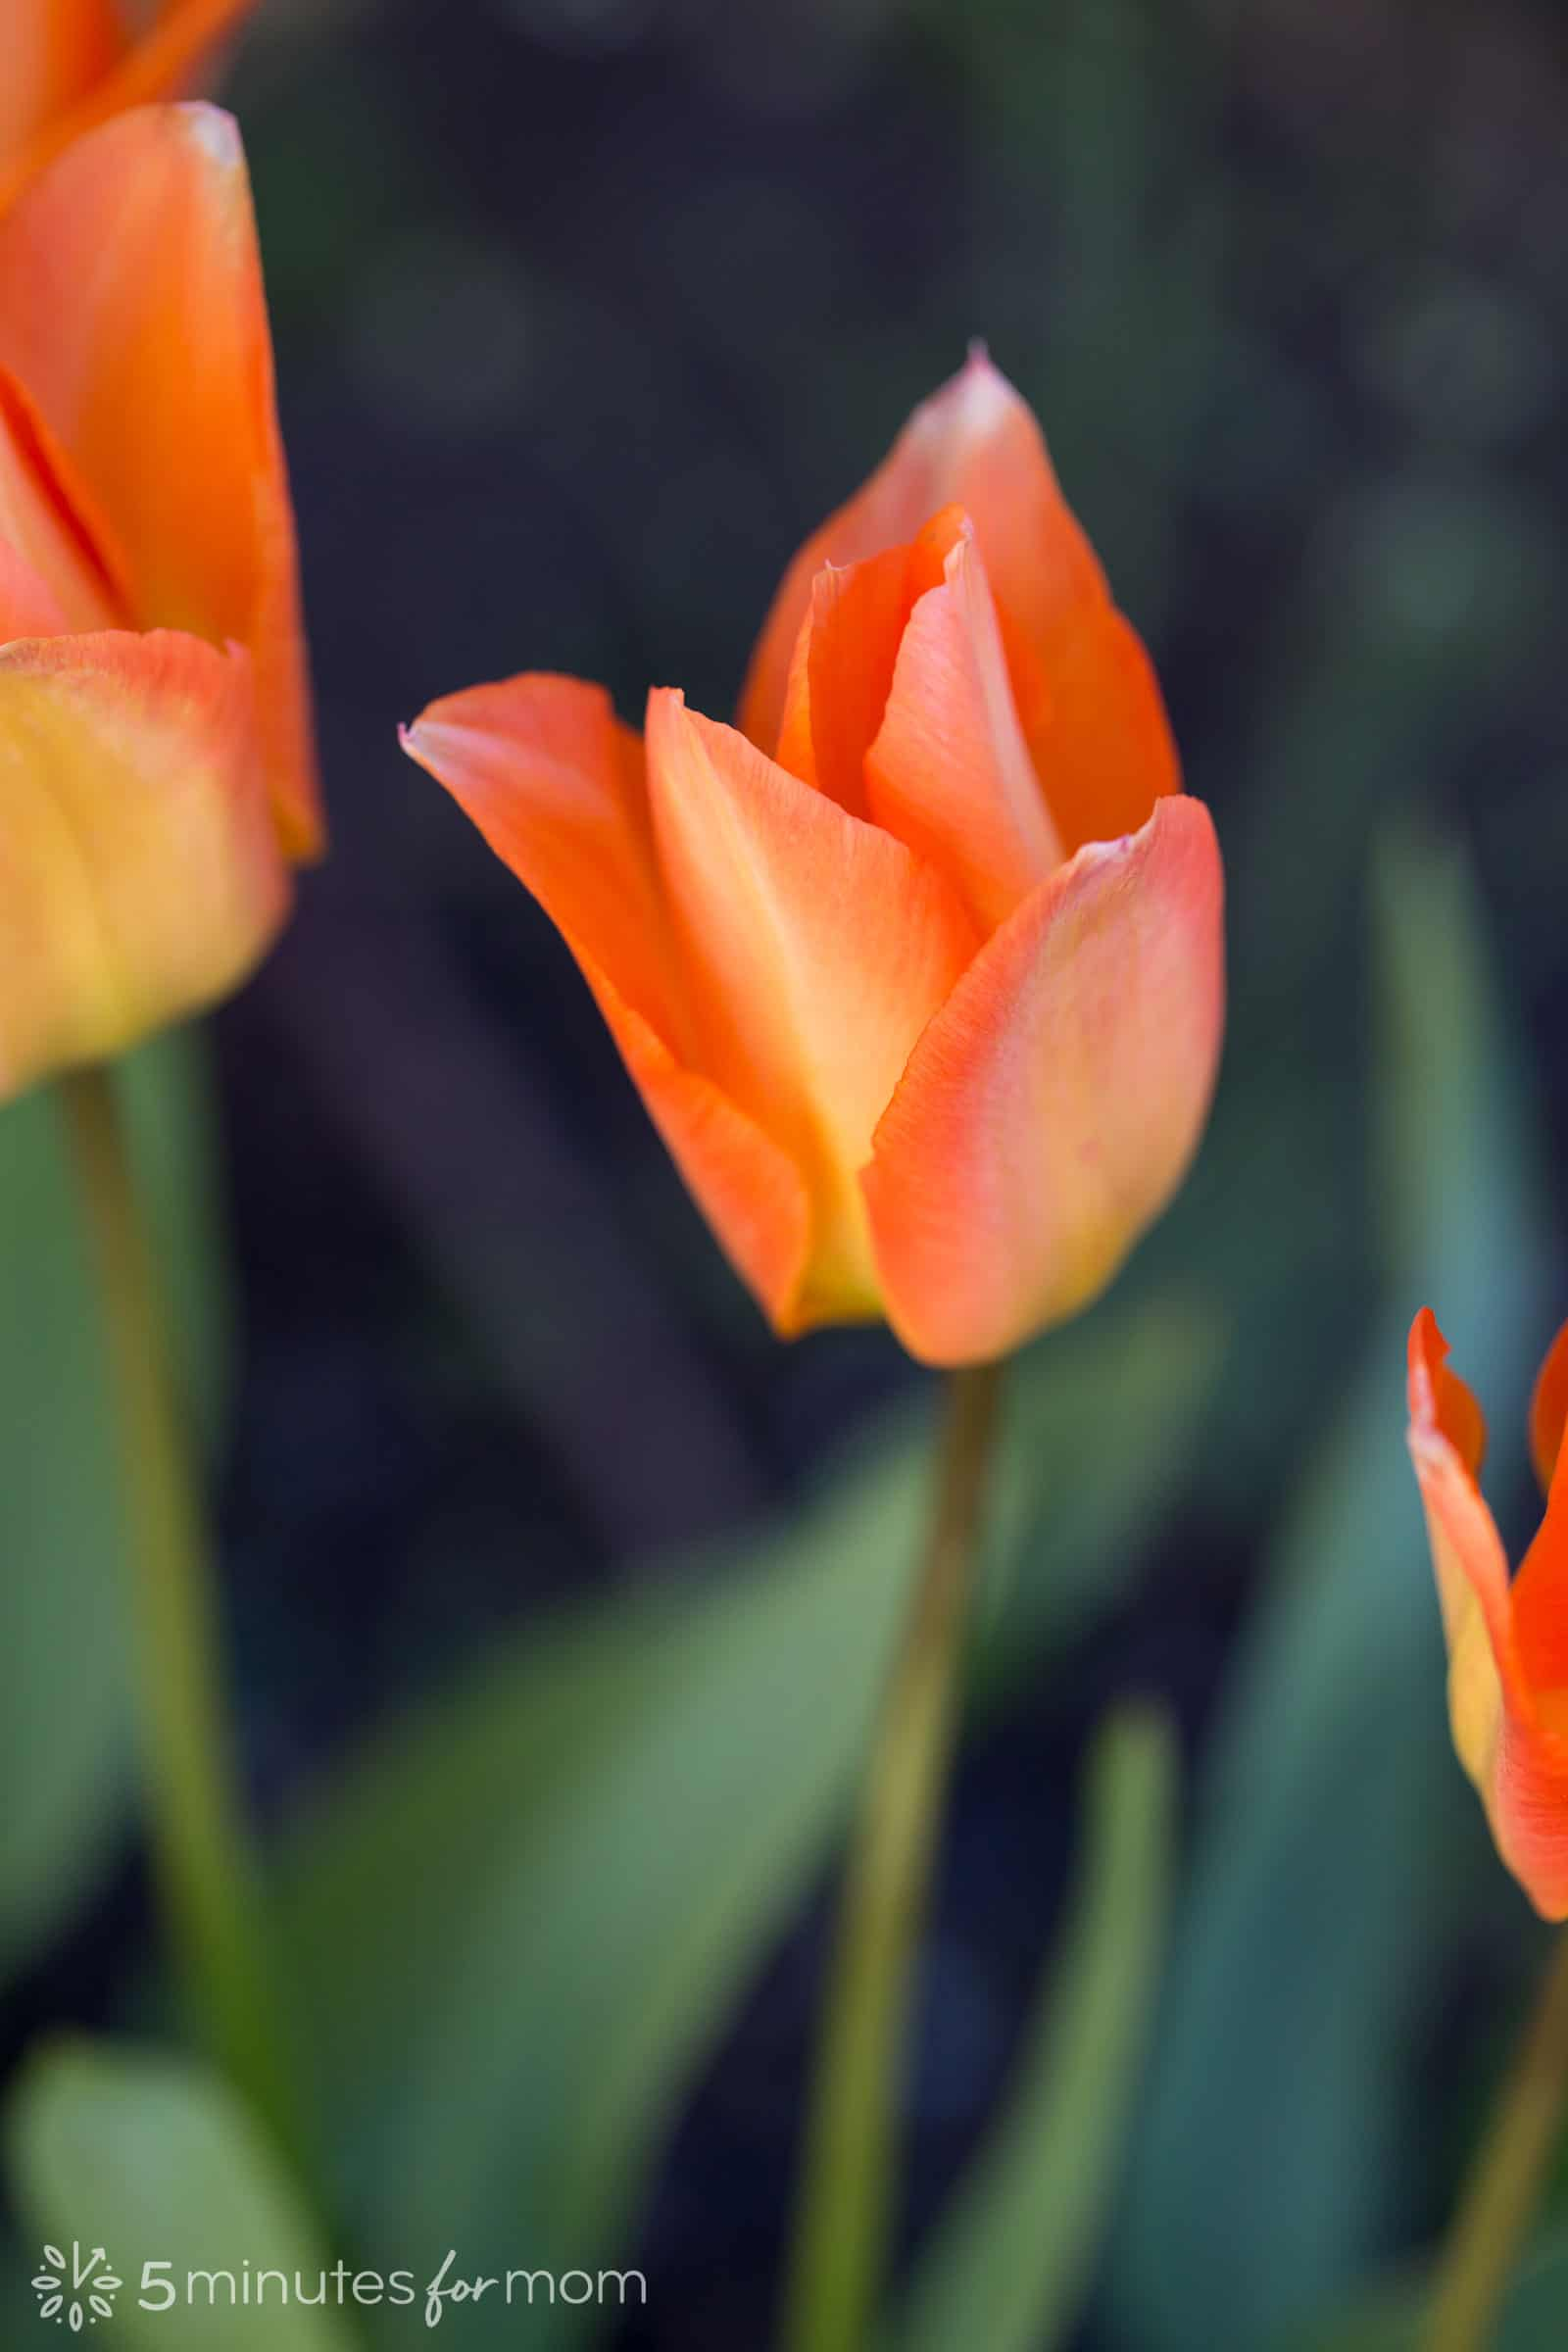 tulip photographed with wide aperture and shallow depth of field